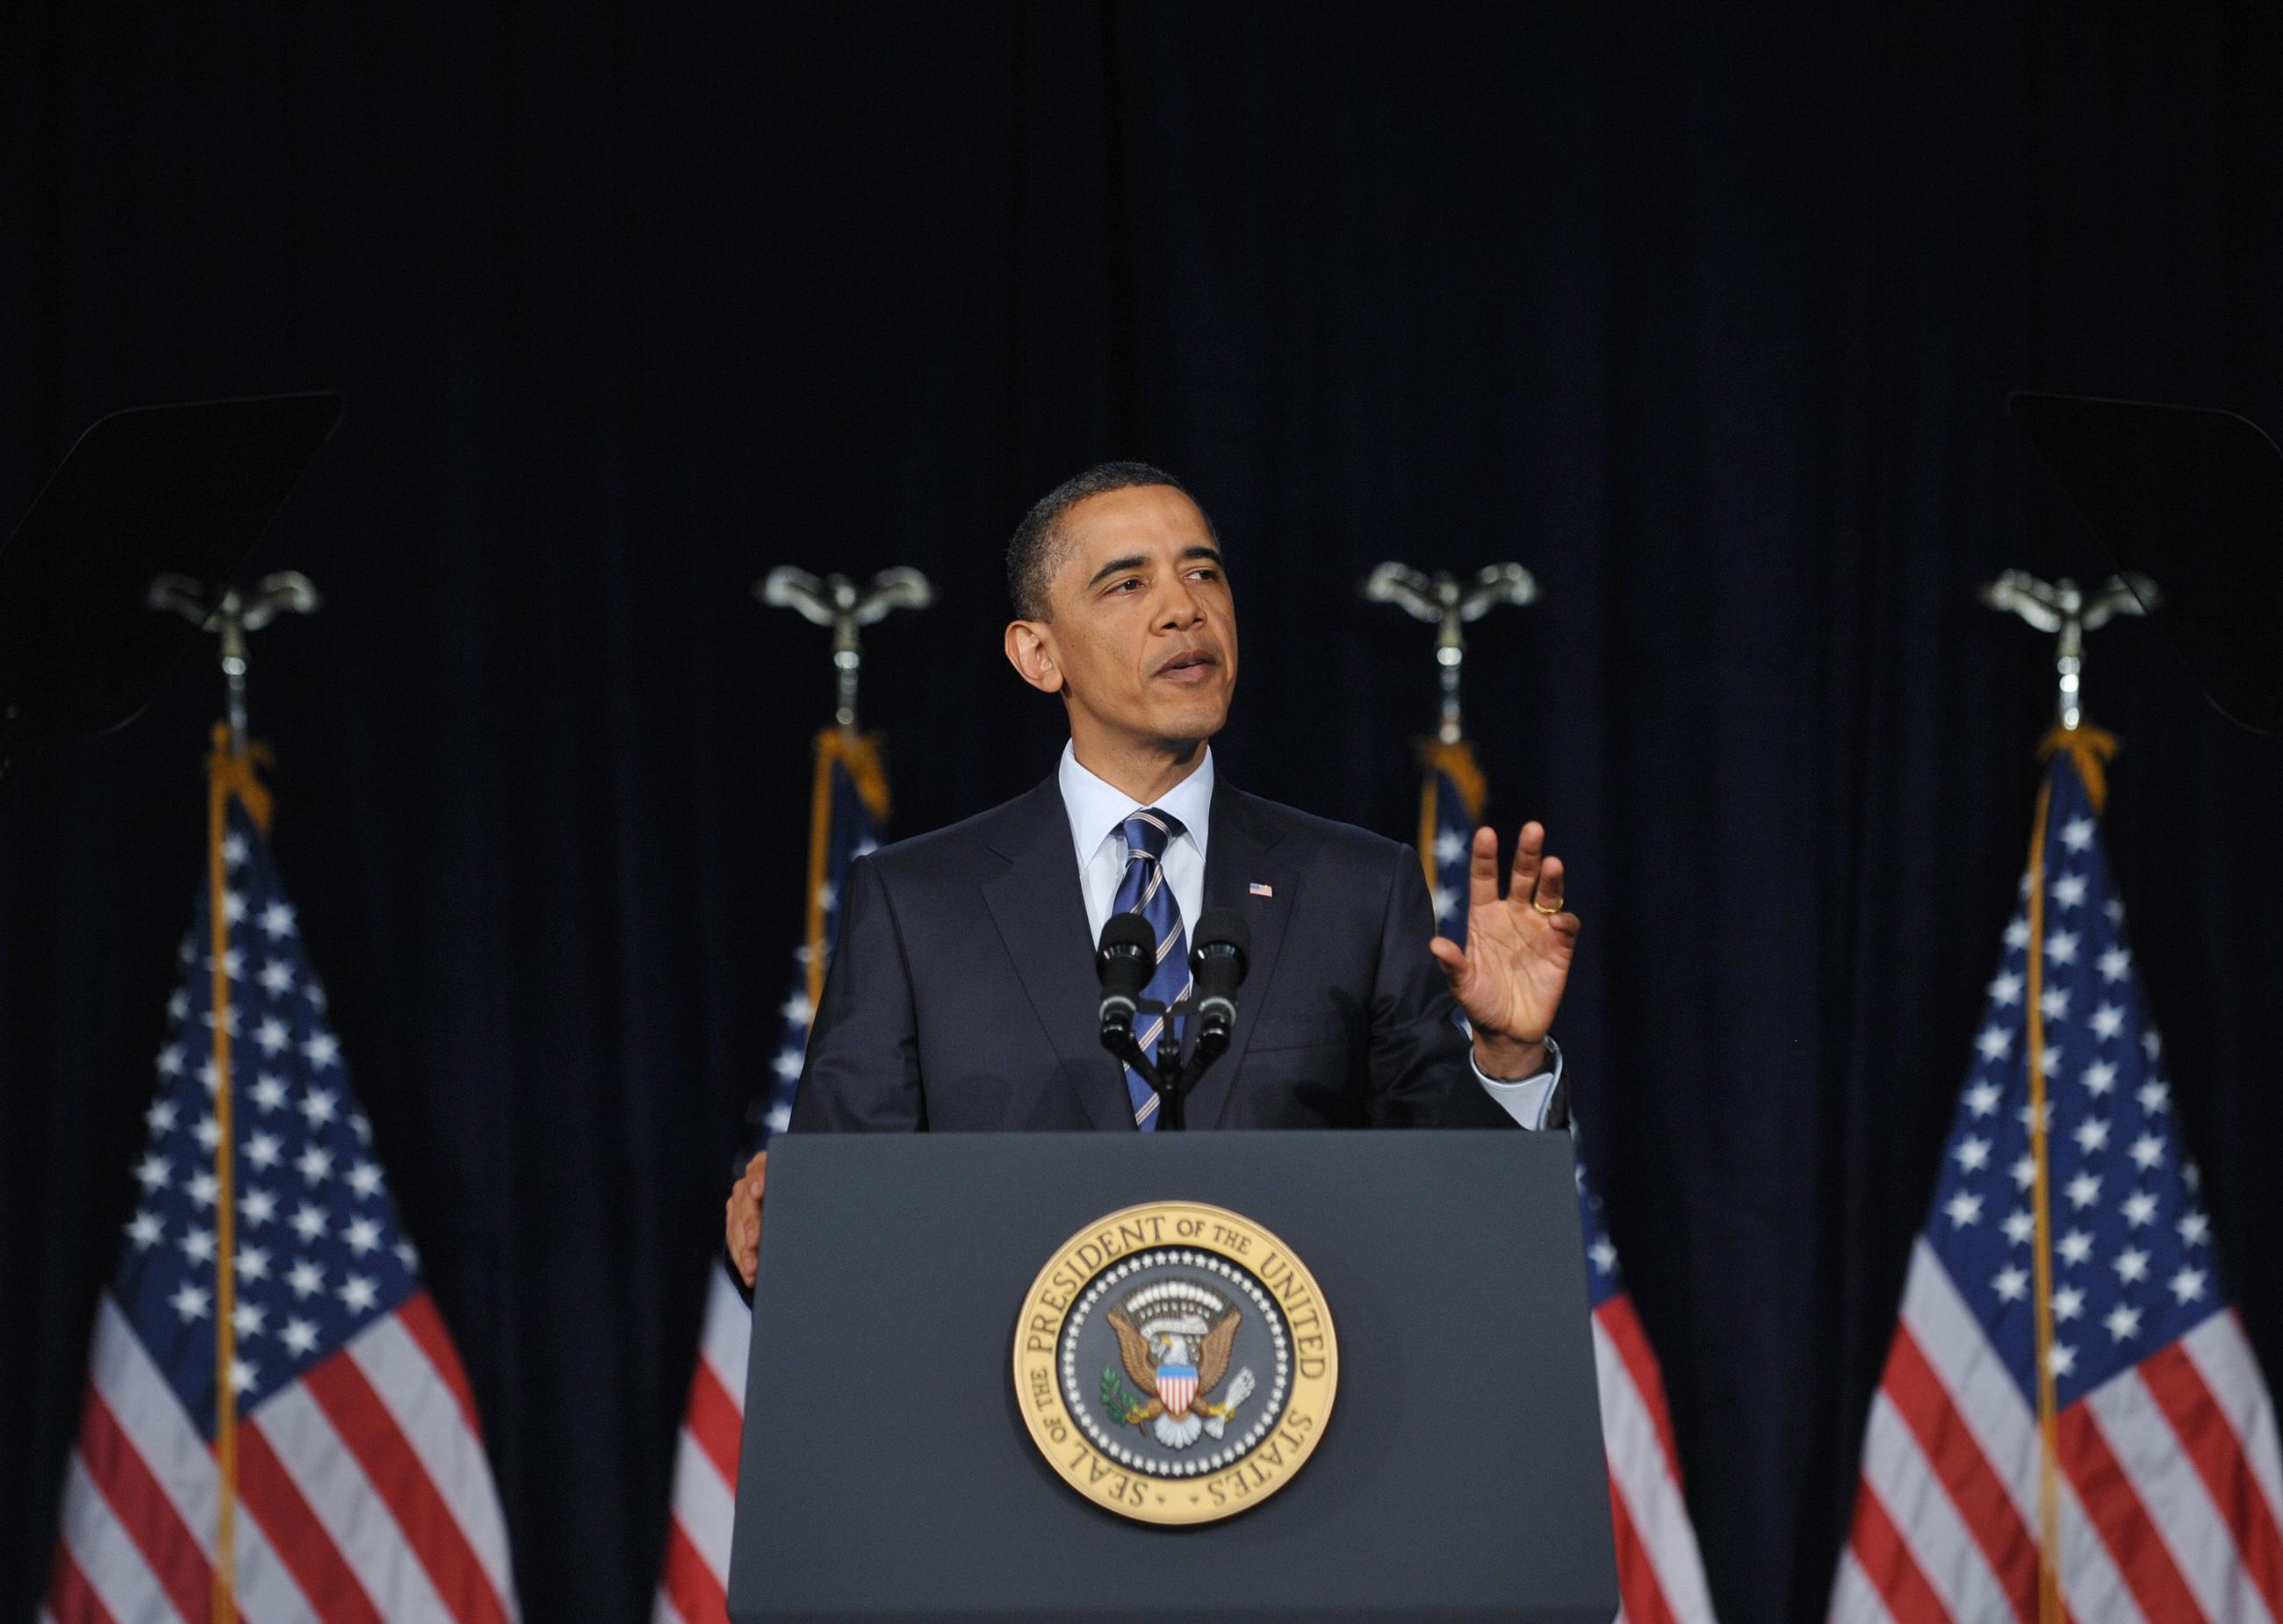 With Debt Plan, Obama Portrays Himself as Reasonable, Courageous